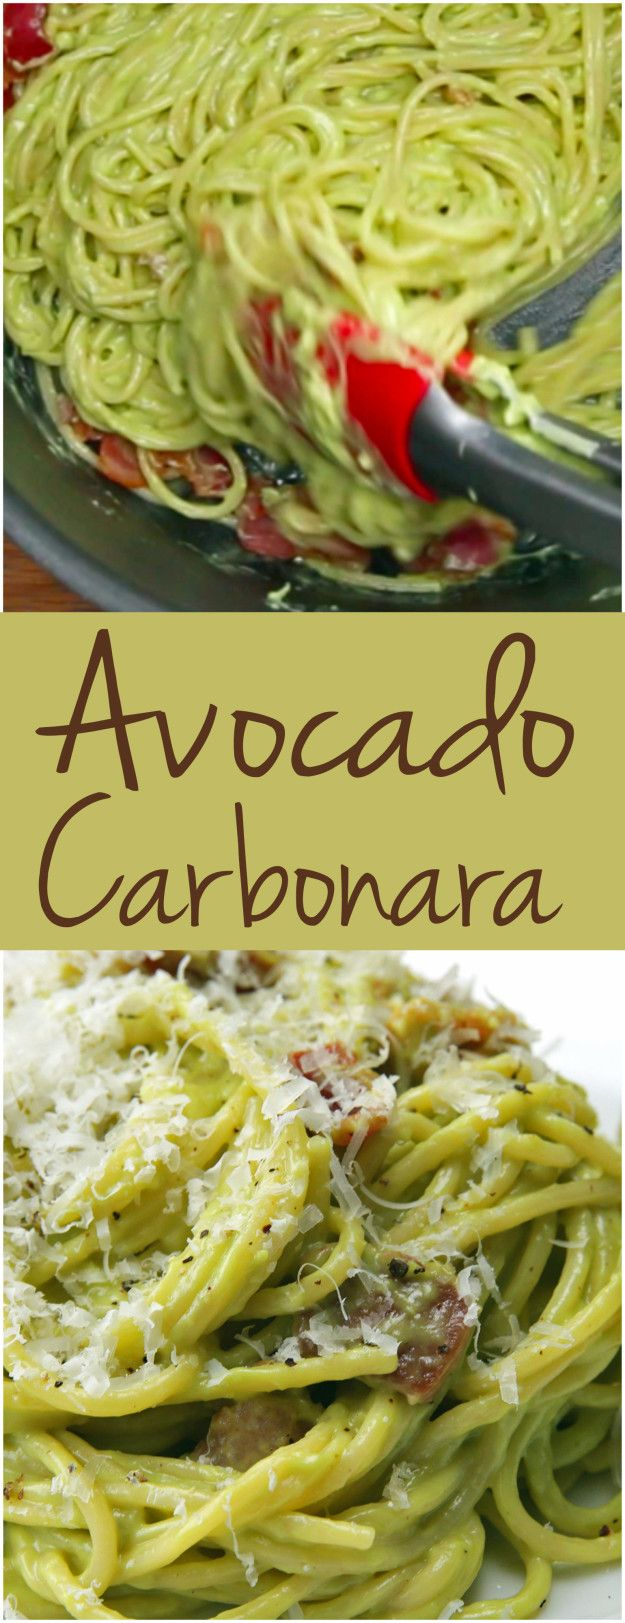 Avocado Carbonara                                                                                                                                                                                 More